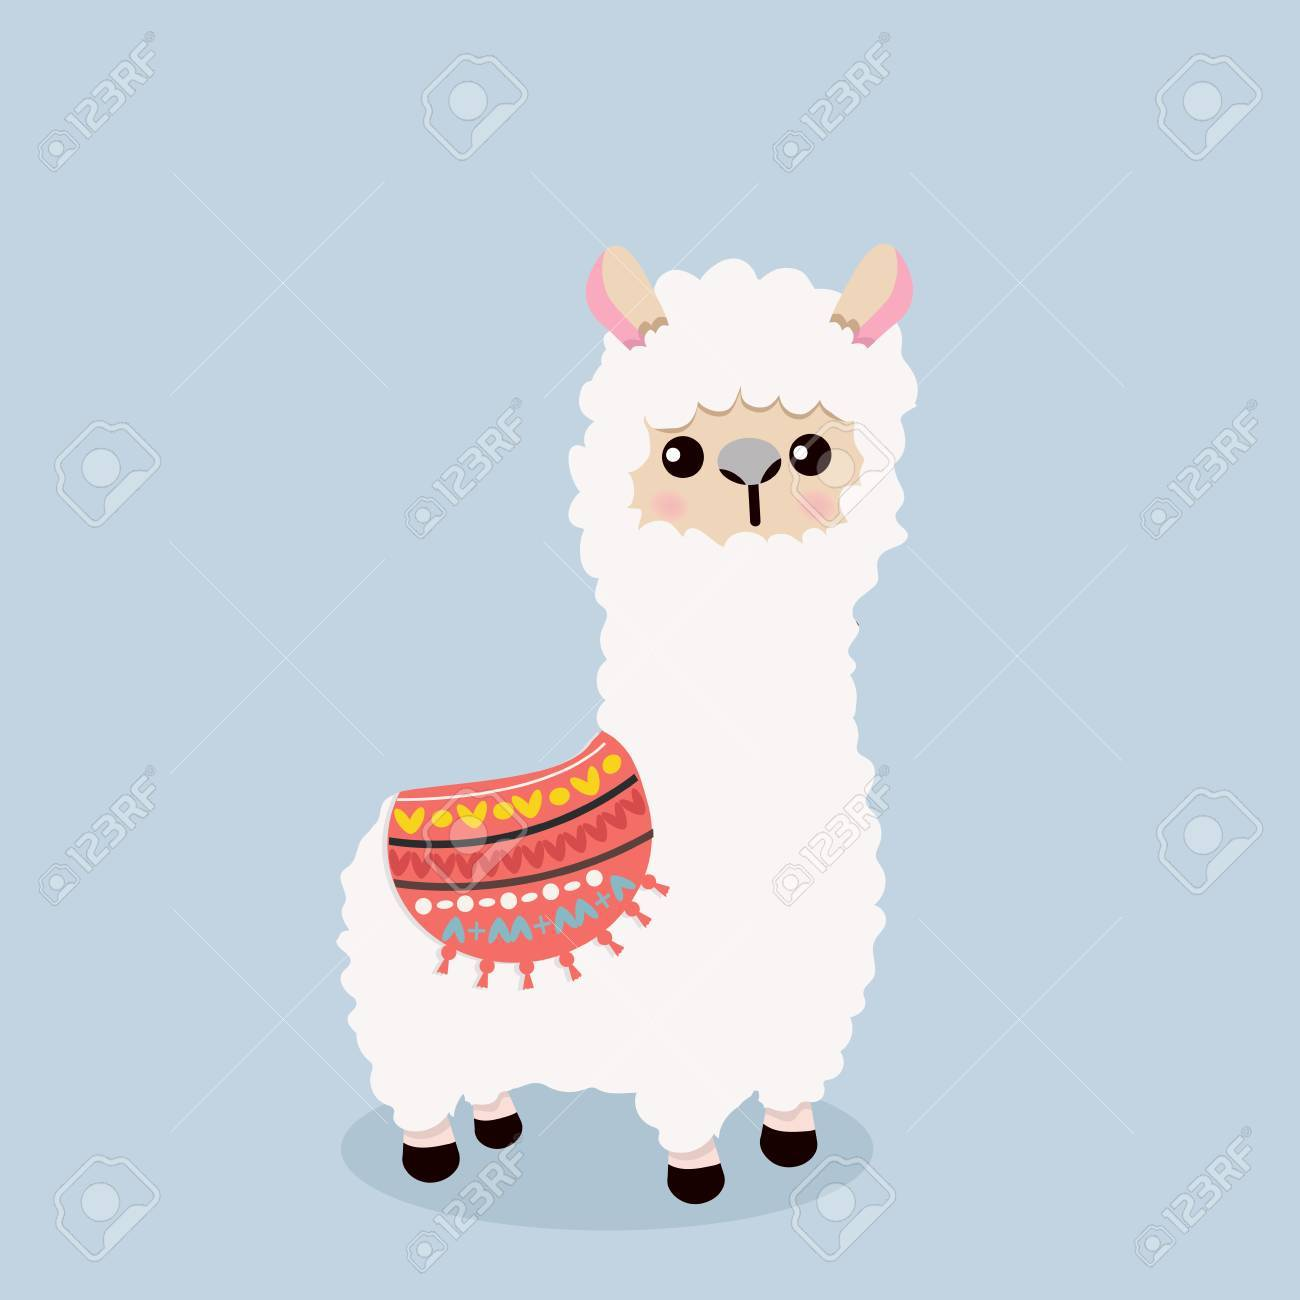 Alpaca clipart images banner freeuse library Cute alpaca clipart 4 » Clipart Portal banner freeuse library